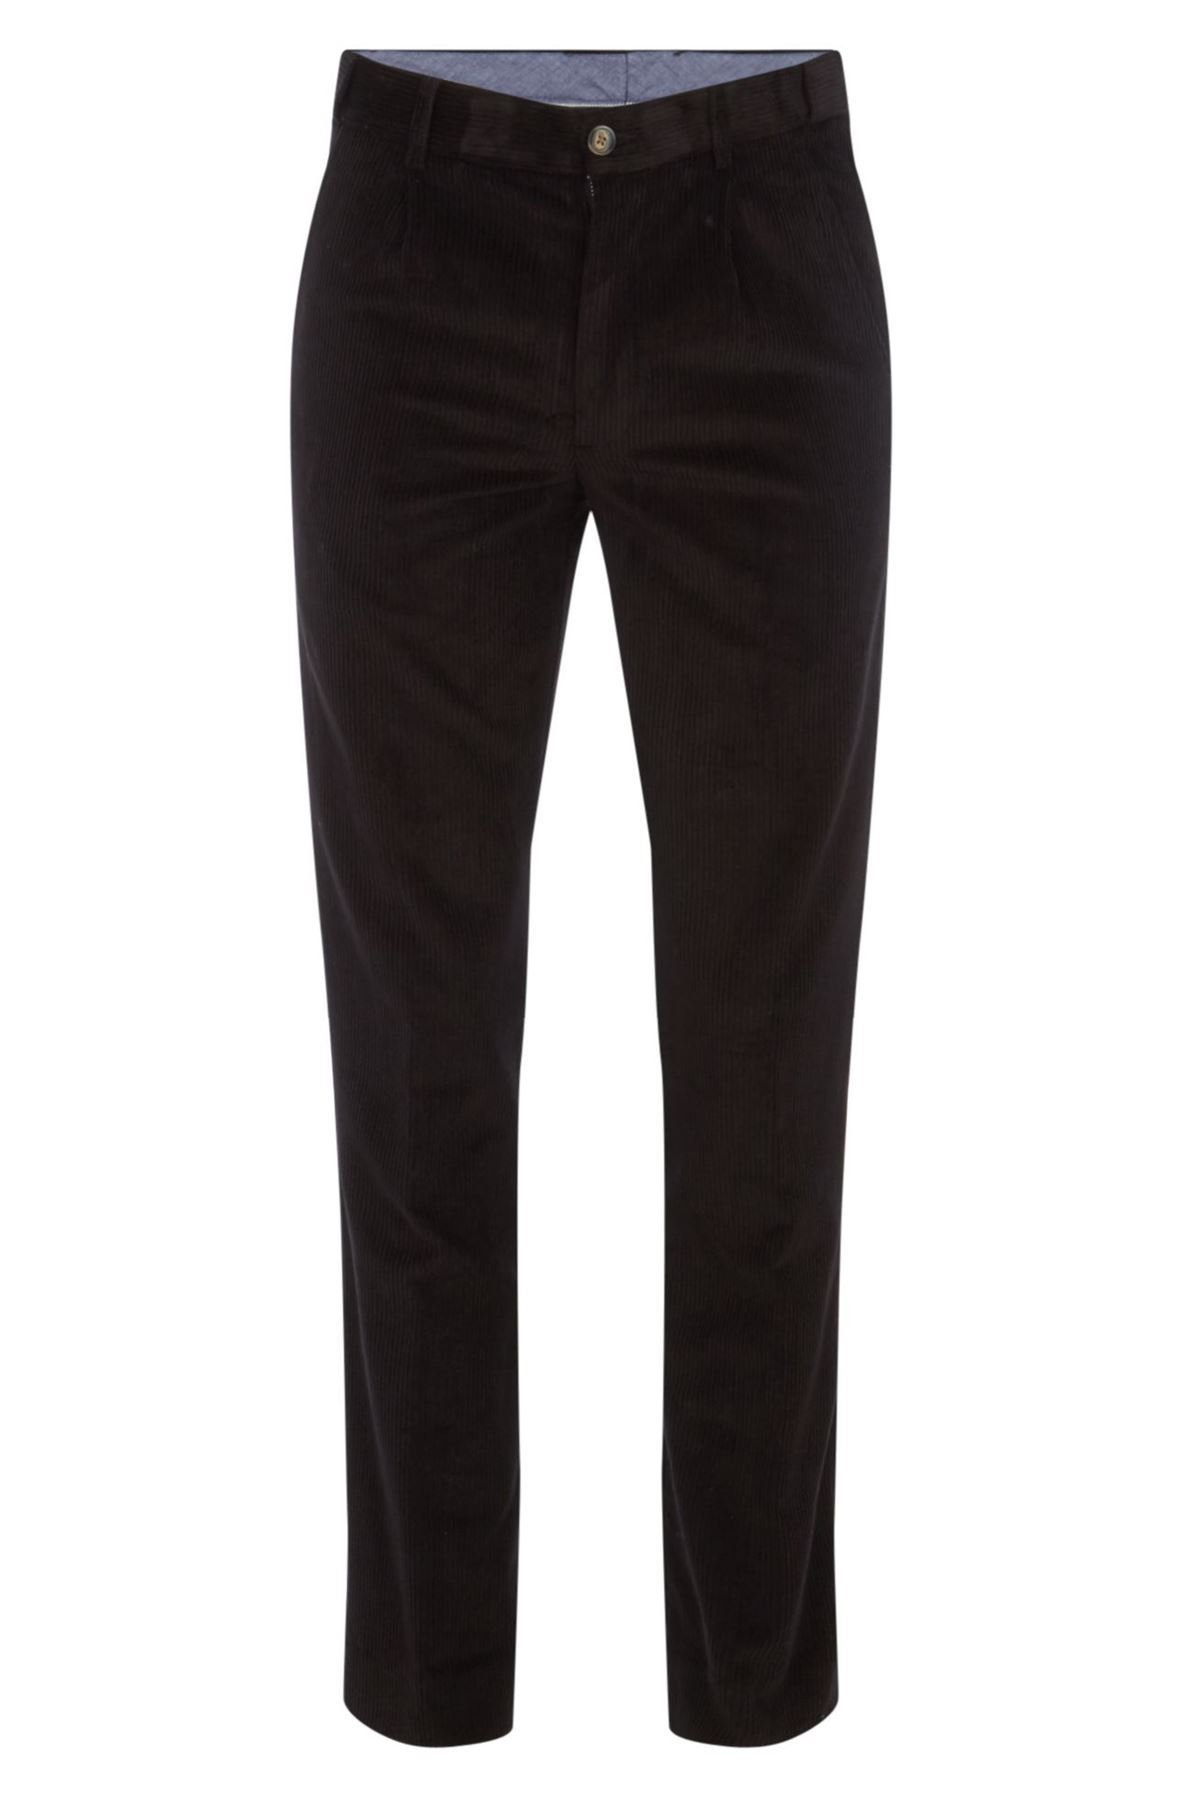 MAINE-Mens-Jumbo-Cord-Smart-Casual-Trousers-SALE-Were-42 thumbnail 8